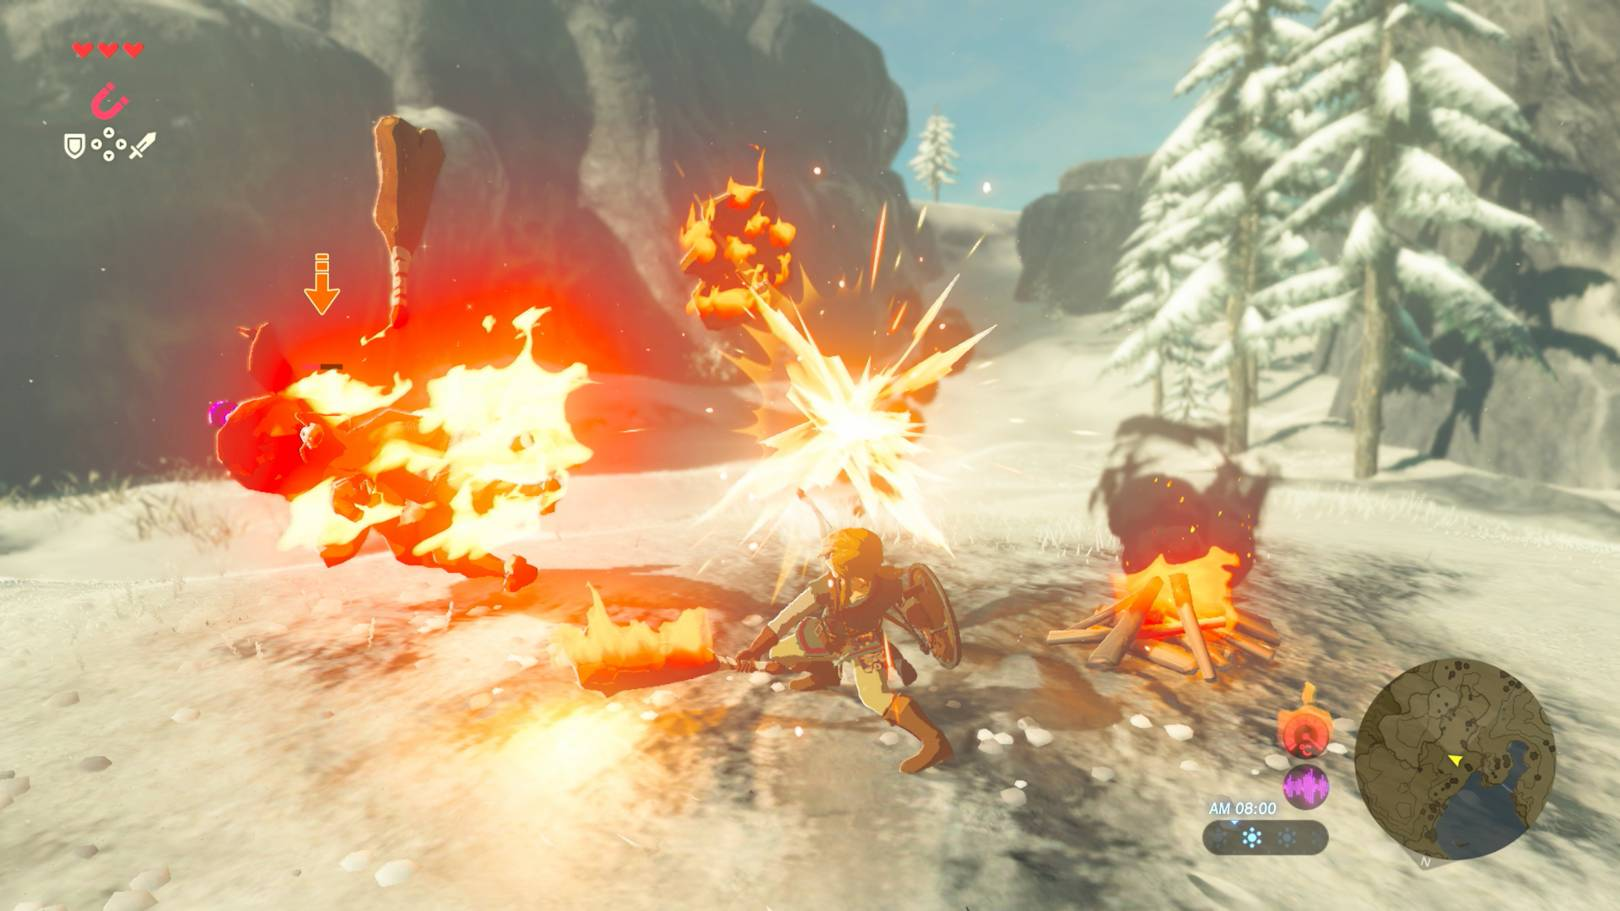 Zelda Breath of the Wild review: an epic masterpiece | WIRED UK